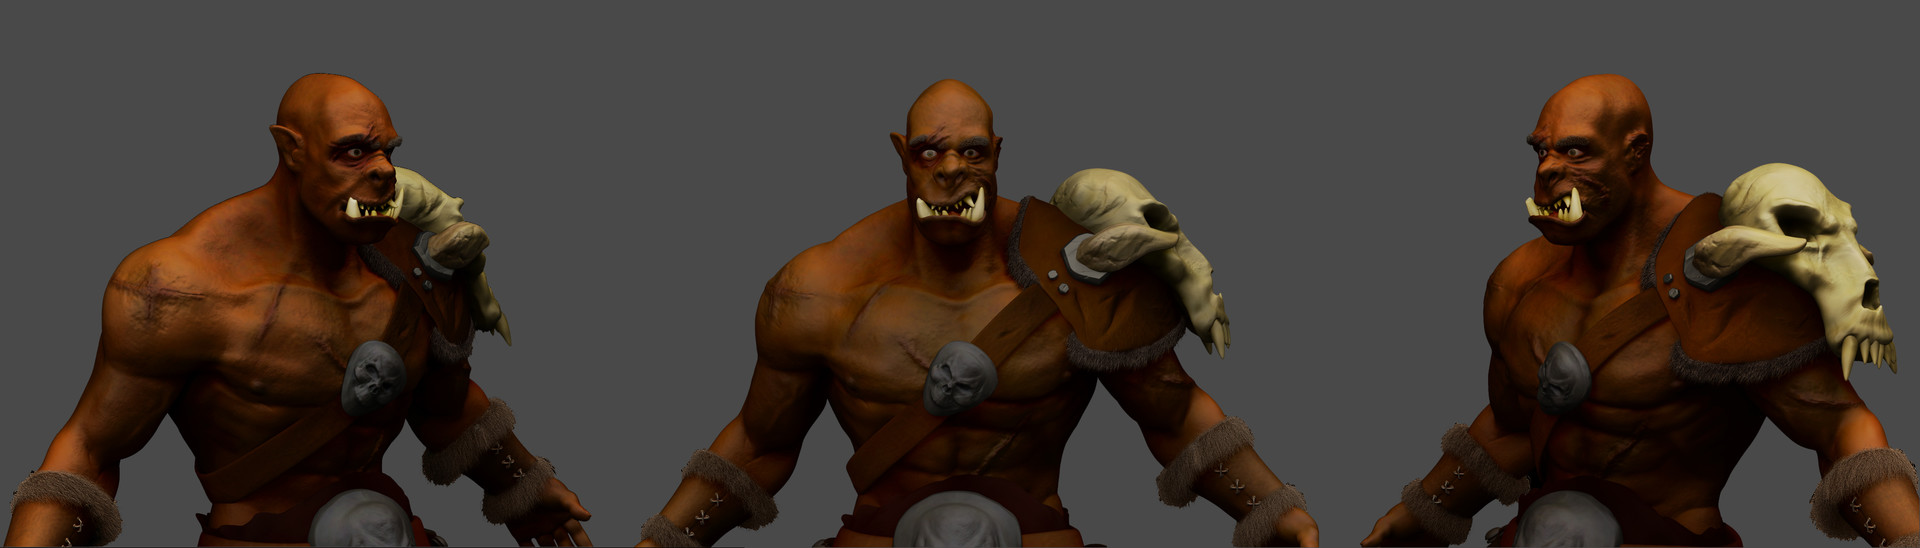 Mitchell sisson orc side upclose render